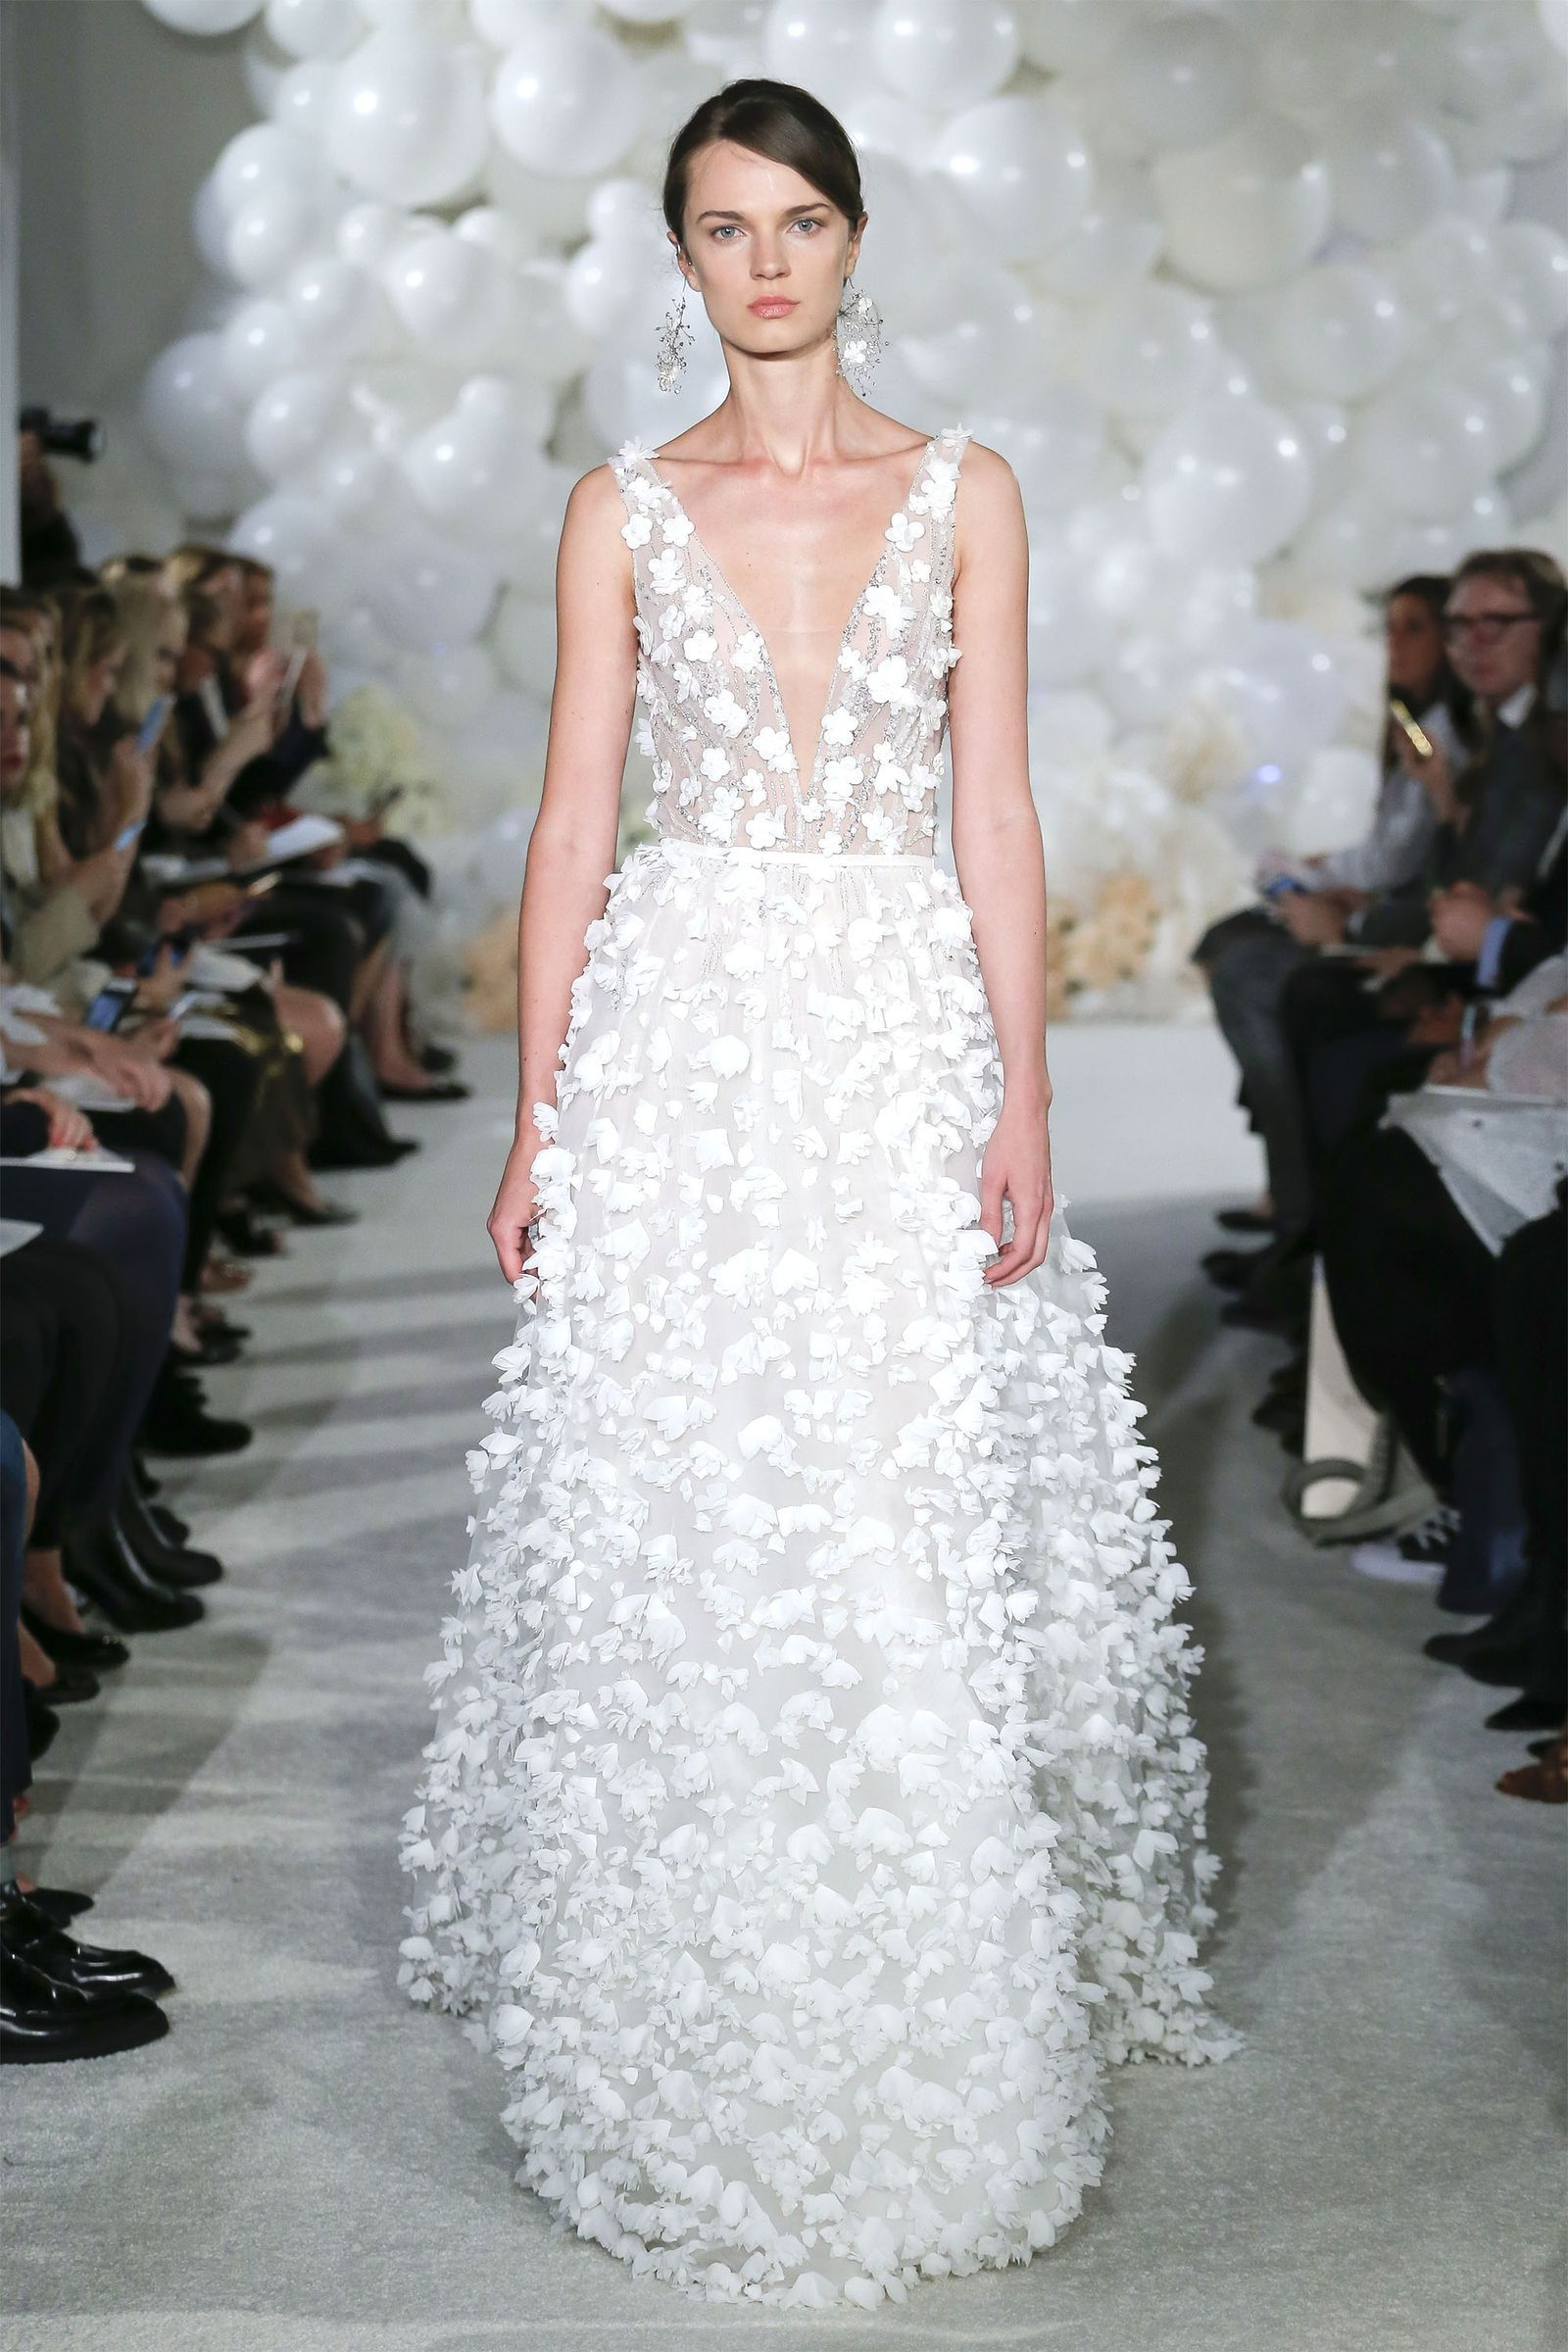 Best in bridal spring us best looks bliss wedding dress and